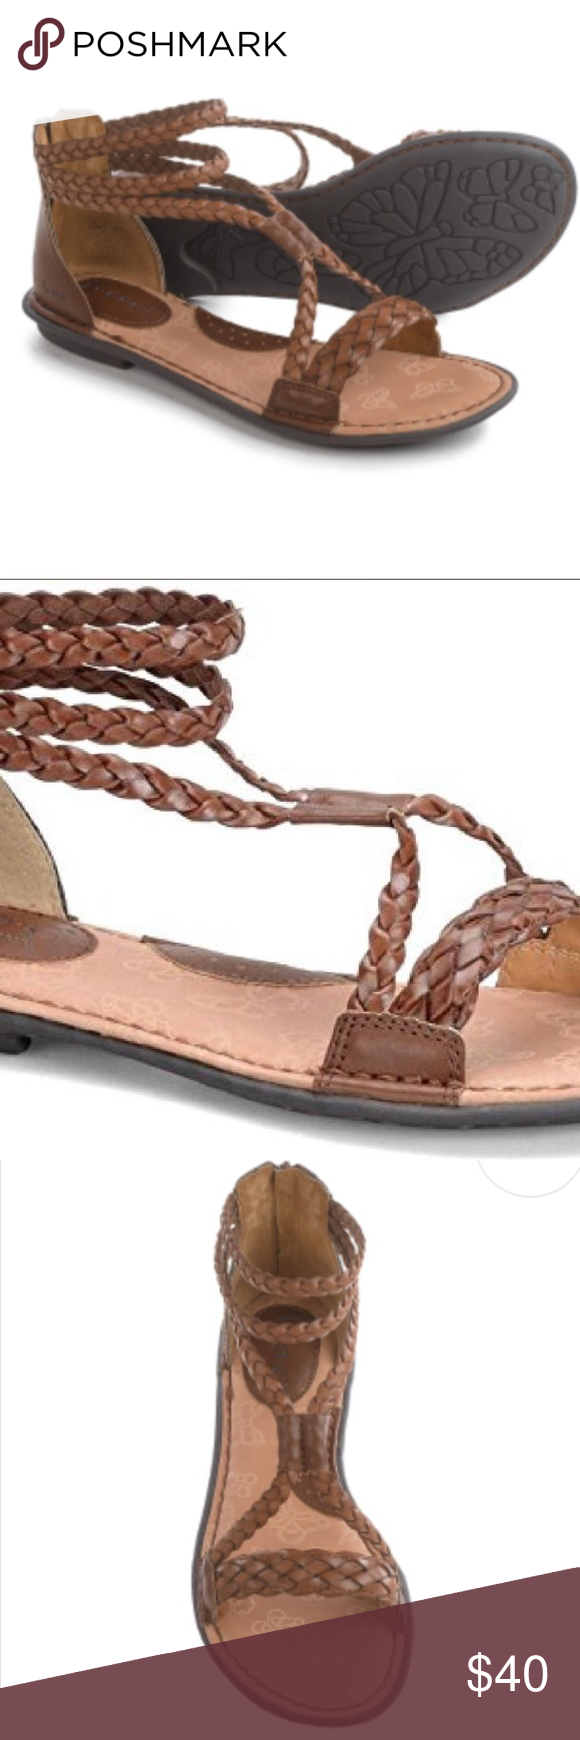 7ccb7840596 b.o.c Macedonia Gladiator Sandals - Vegan Leather New without tags or box.  Never worn Beachy